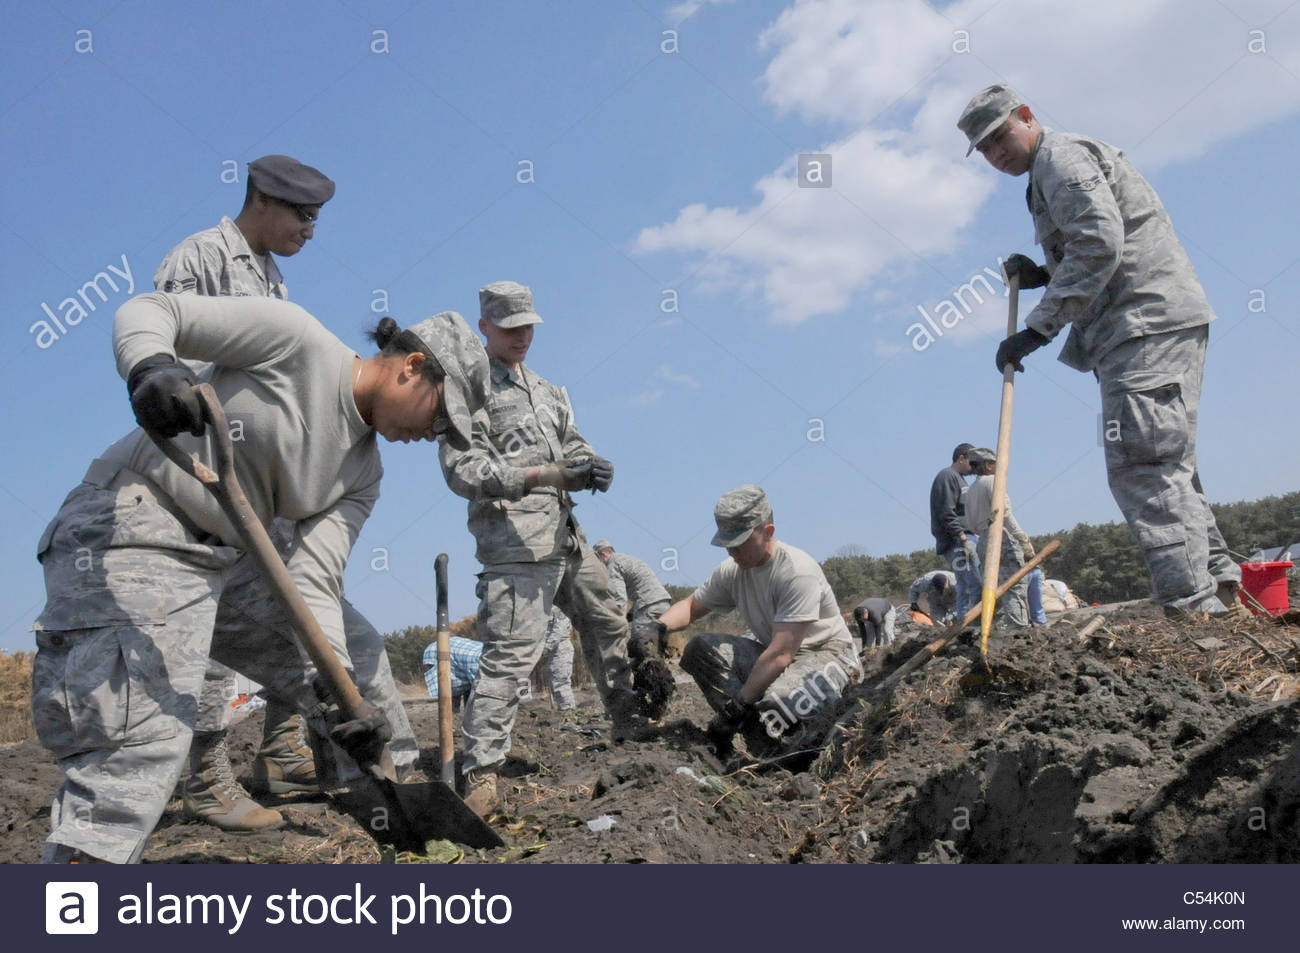 Airmen uncover rows of strawberries April 1, 2011, at a farm in Hachinohe, Japan. - Stock Image